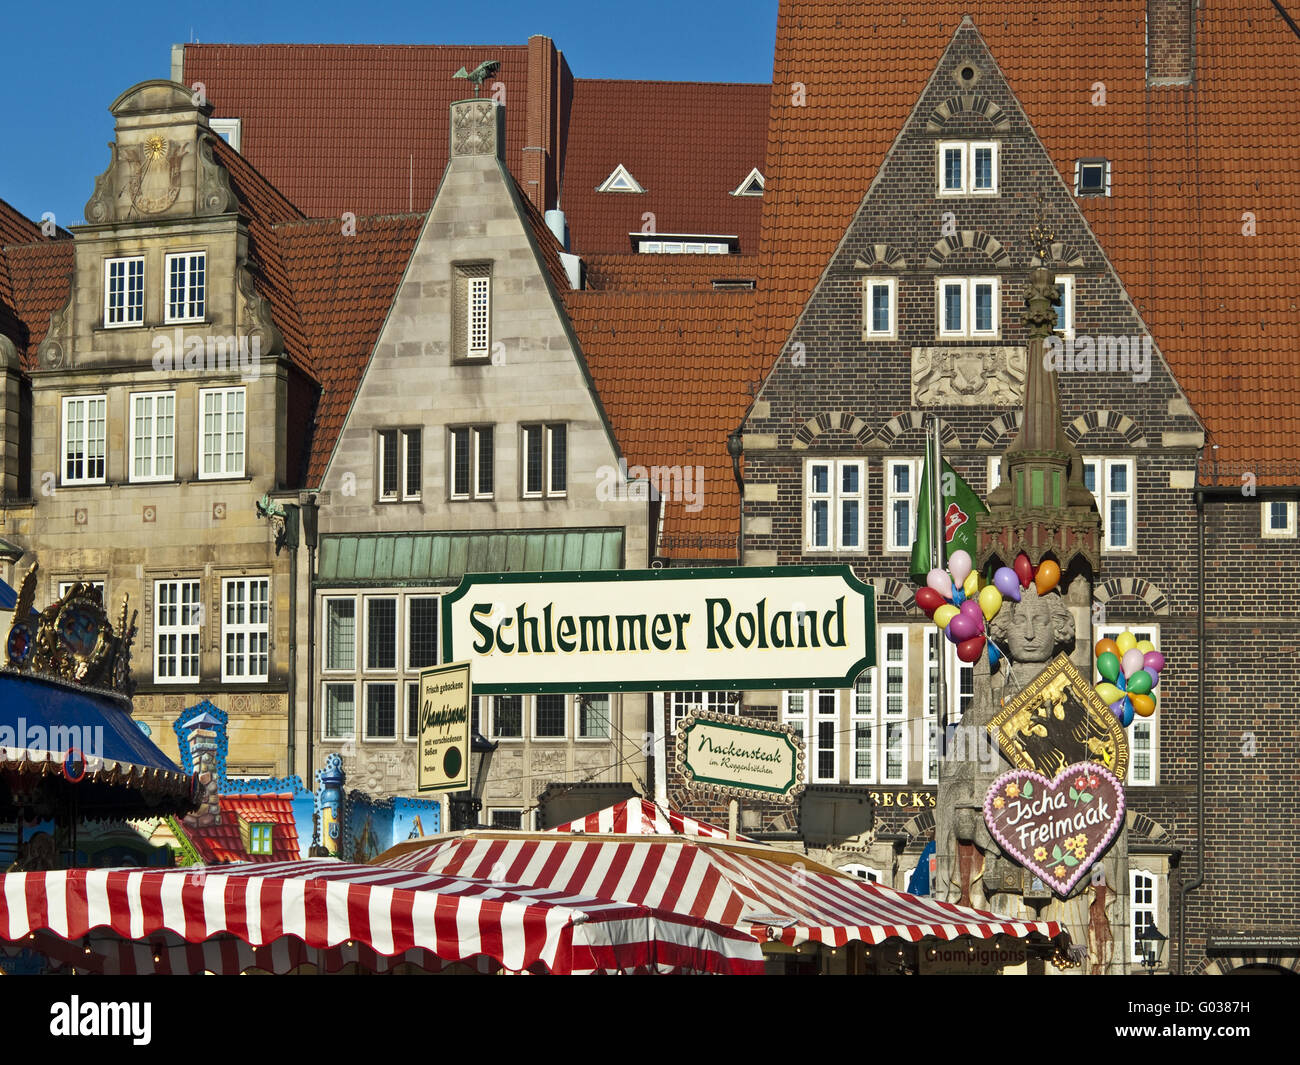 bremer freimarkt stockfotos bremer freimarkt bilder alamy. Black Bedroom Furniture Sets. Home Design Ideas